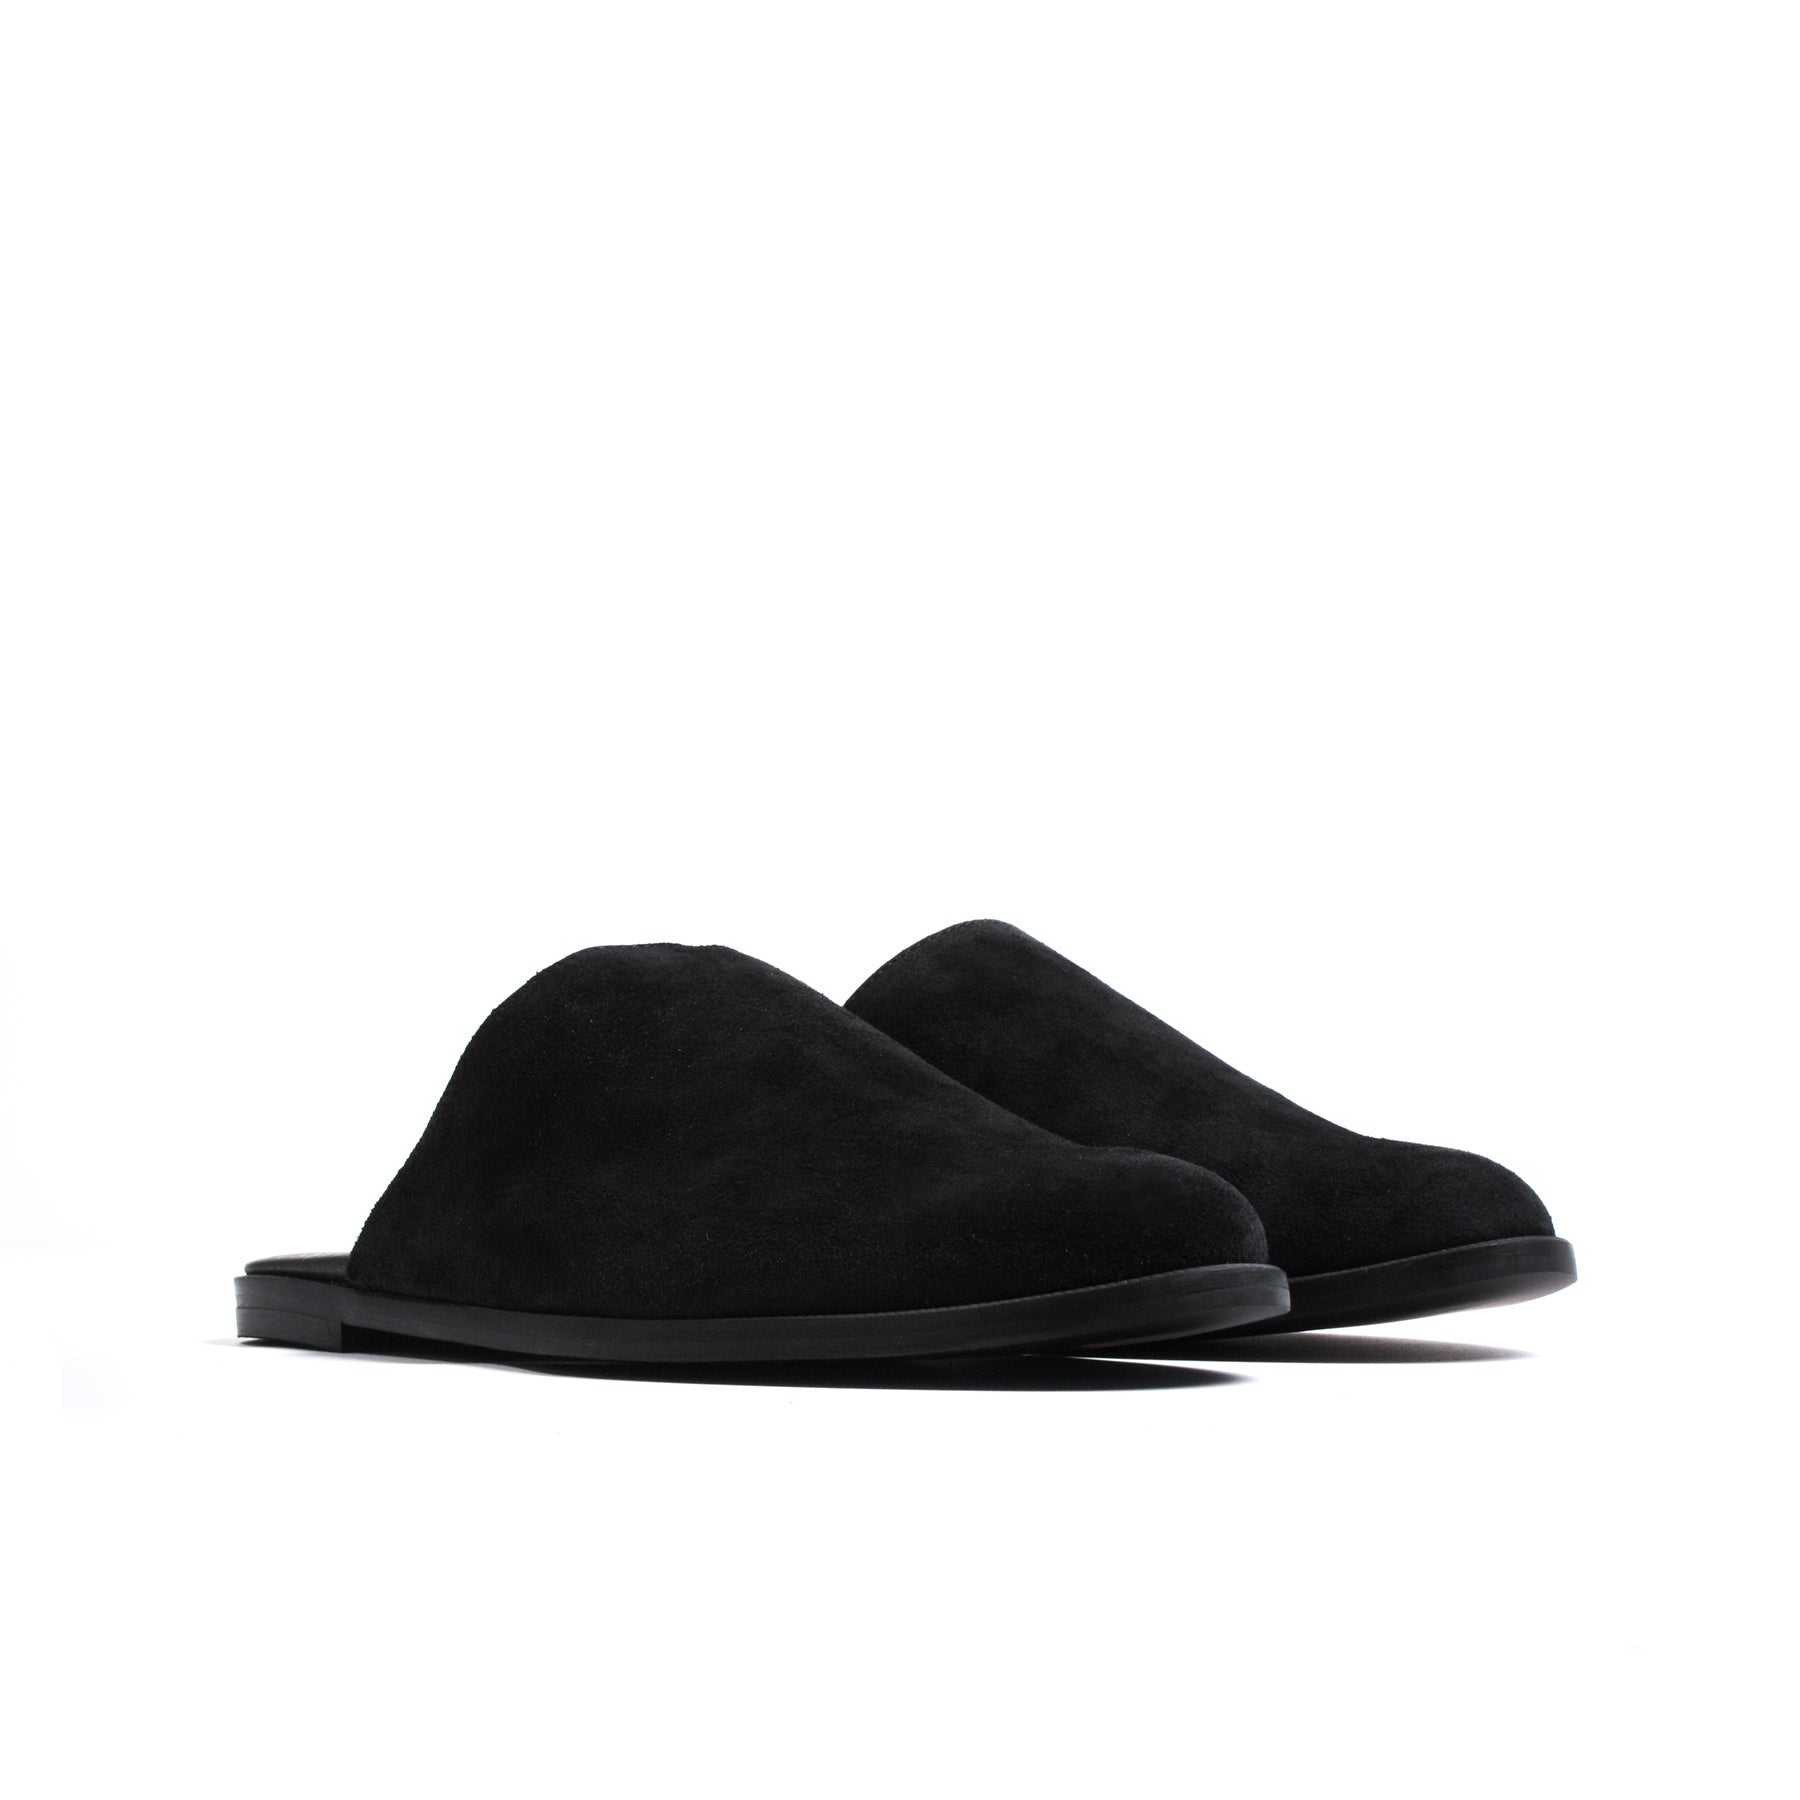 Anette Black Suede